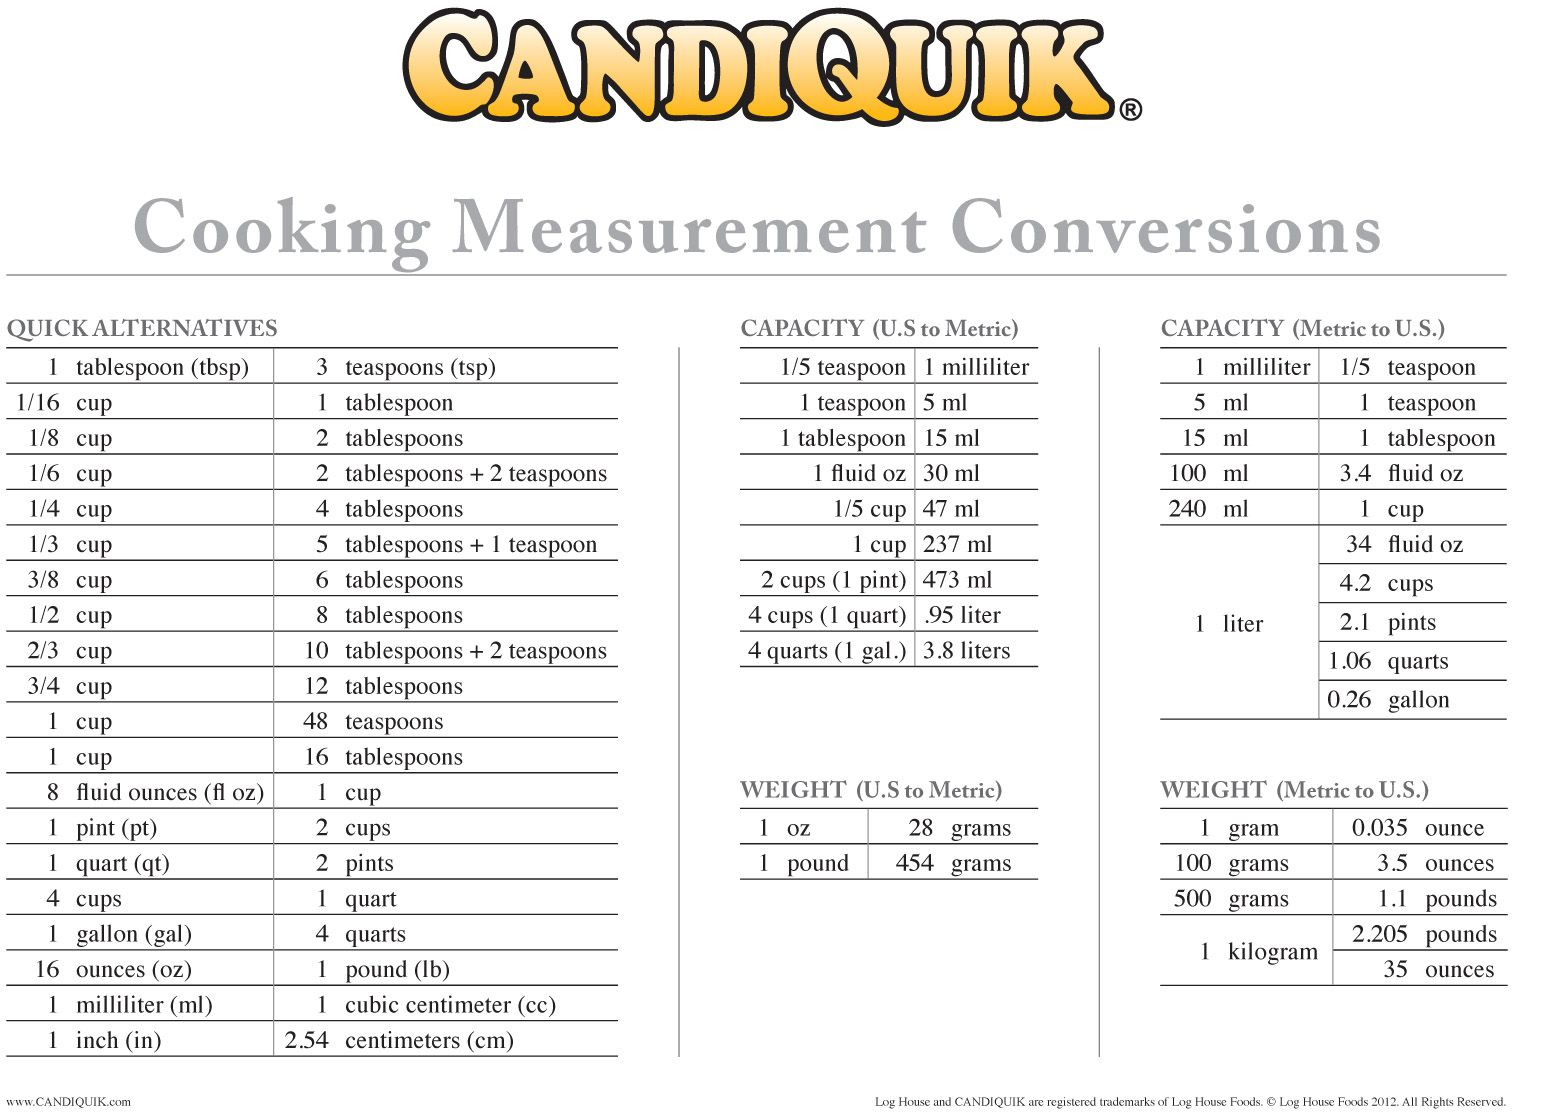 Free printables measurement conversion chart cooking cooking measurement conversion chart free printables cake pop ideas etc from candiquik nvjuhfo Image collections